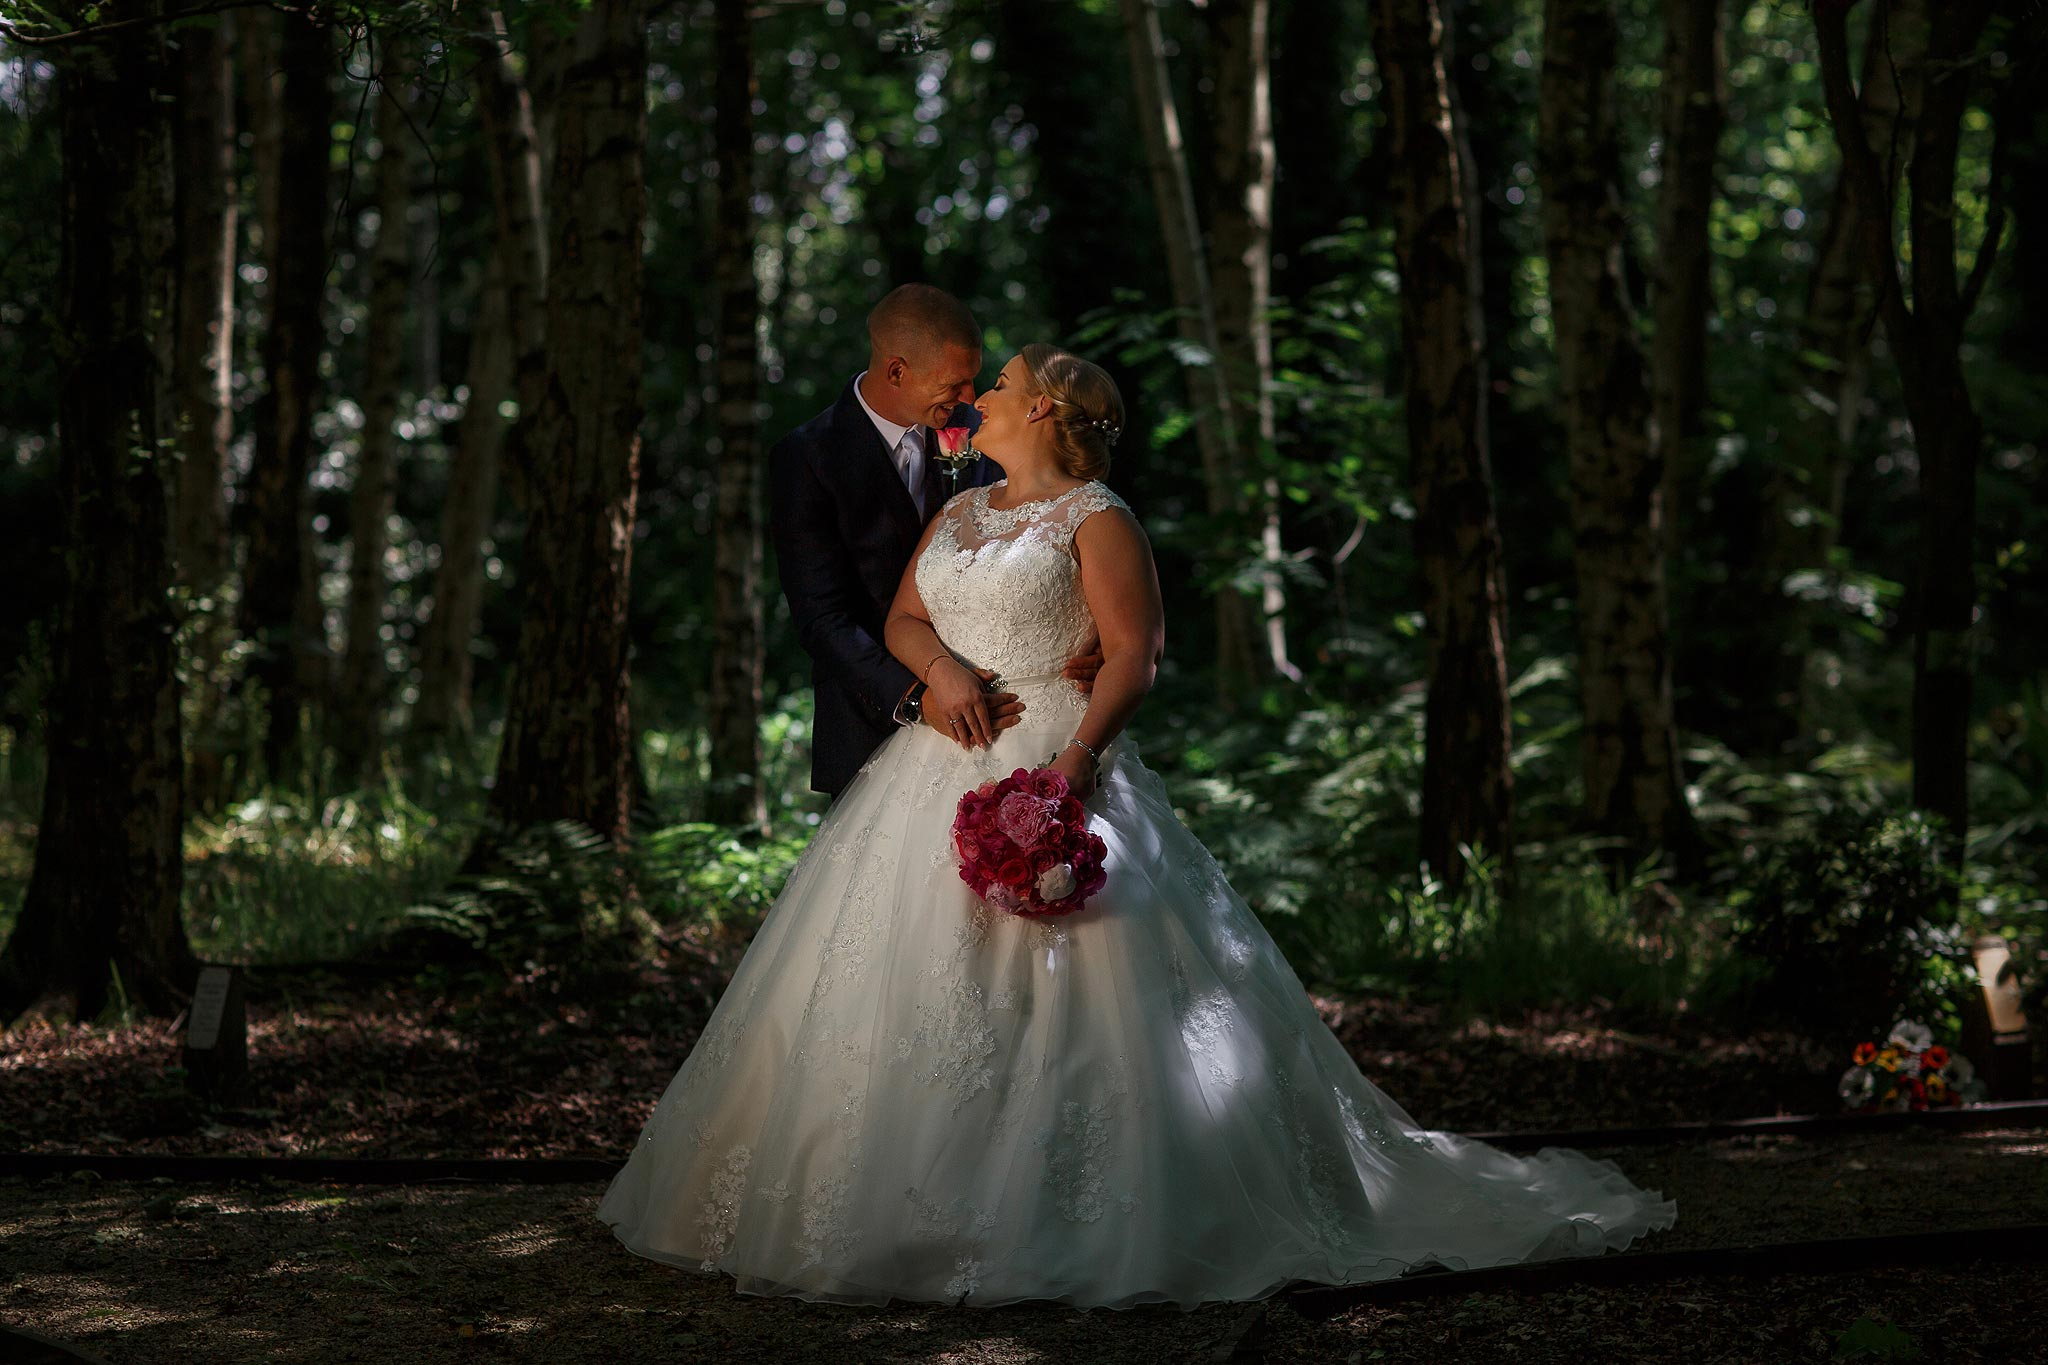 Full length image of bride and groom in woodland